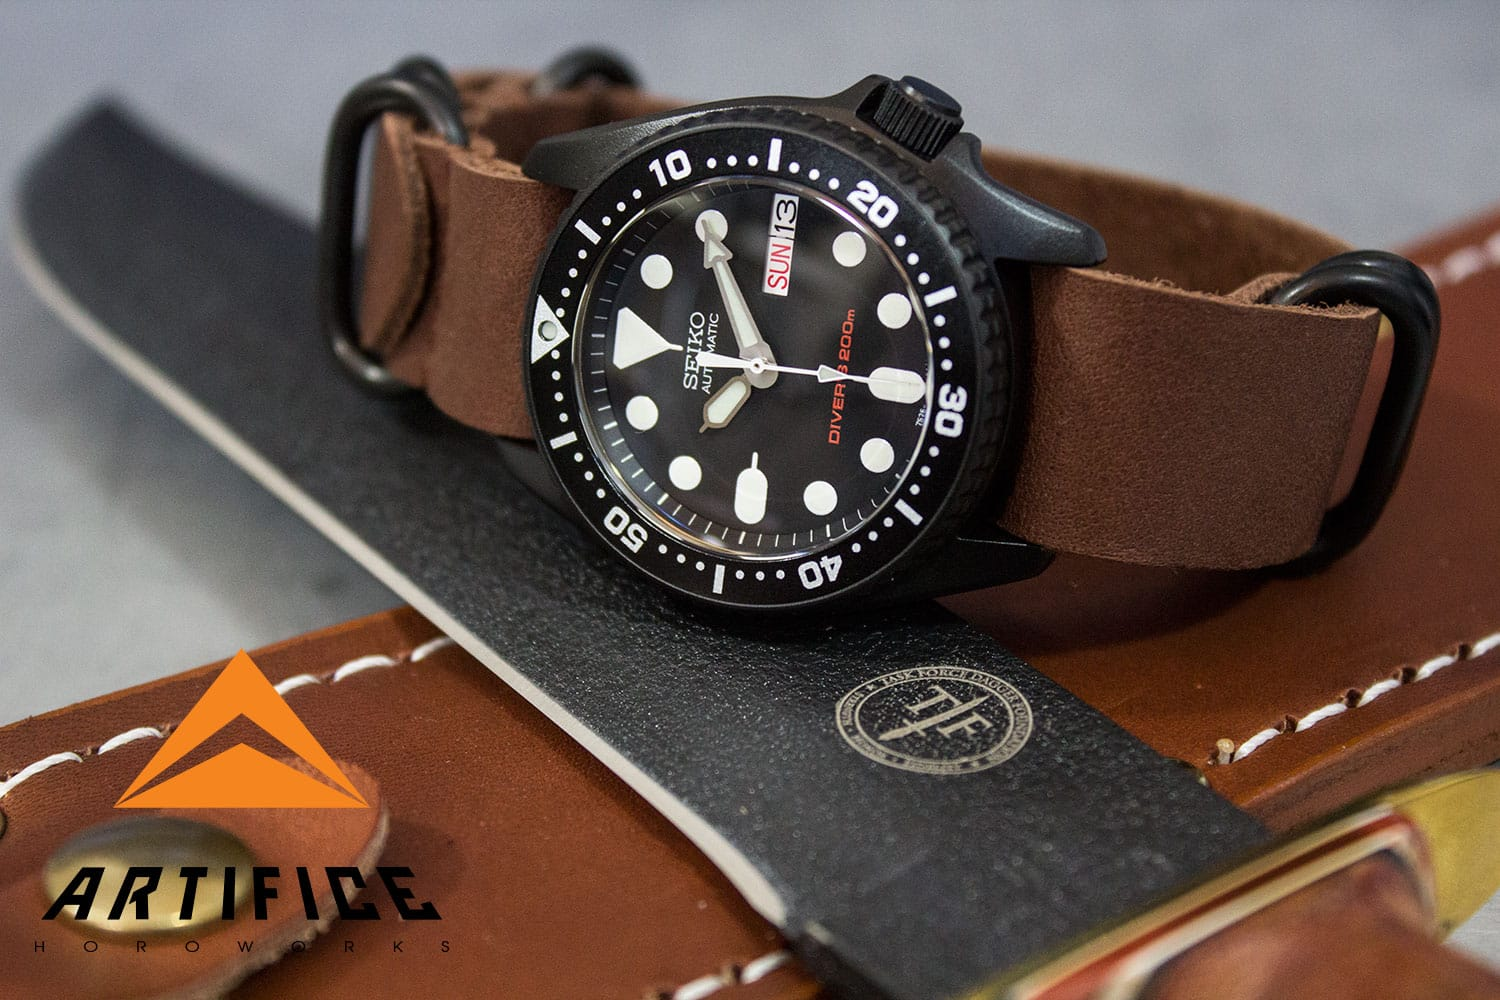 Black Seiko Skx013 Skx Enhanced Artifice Horoworks